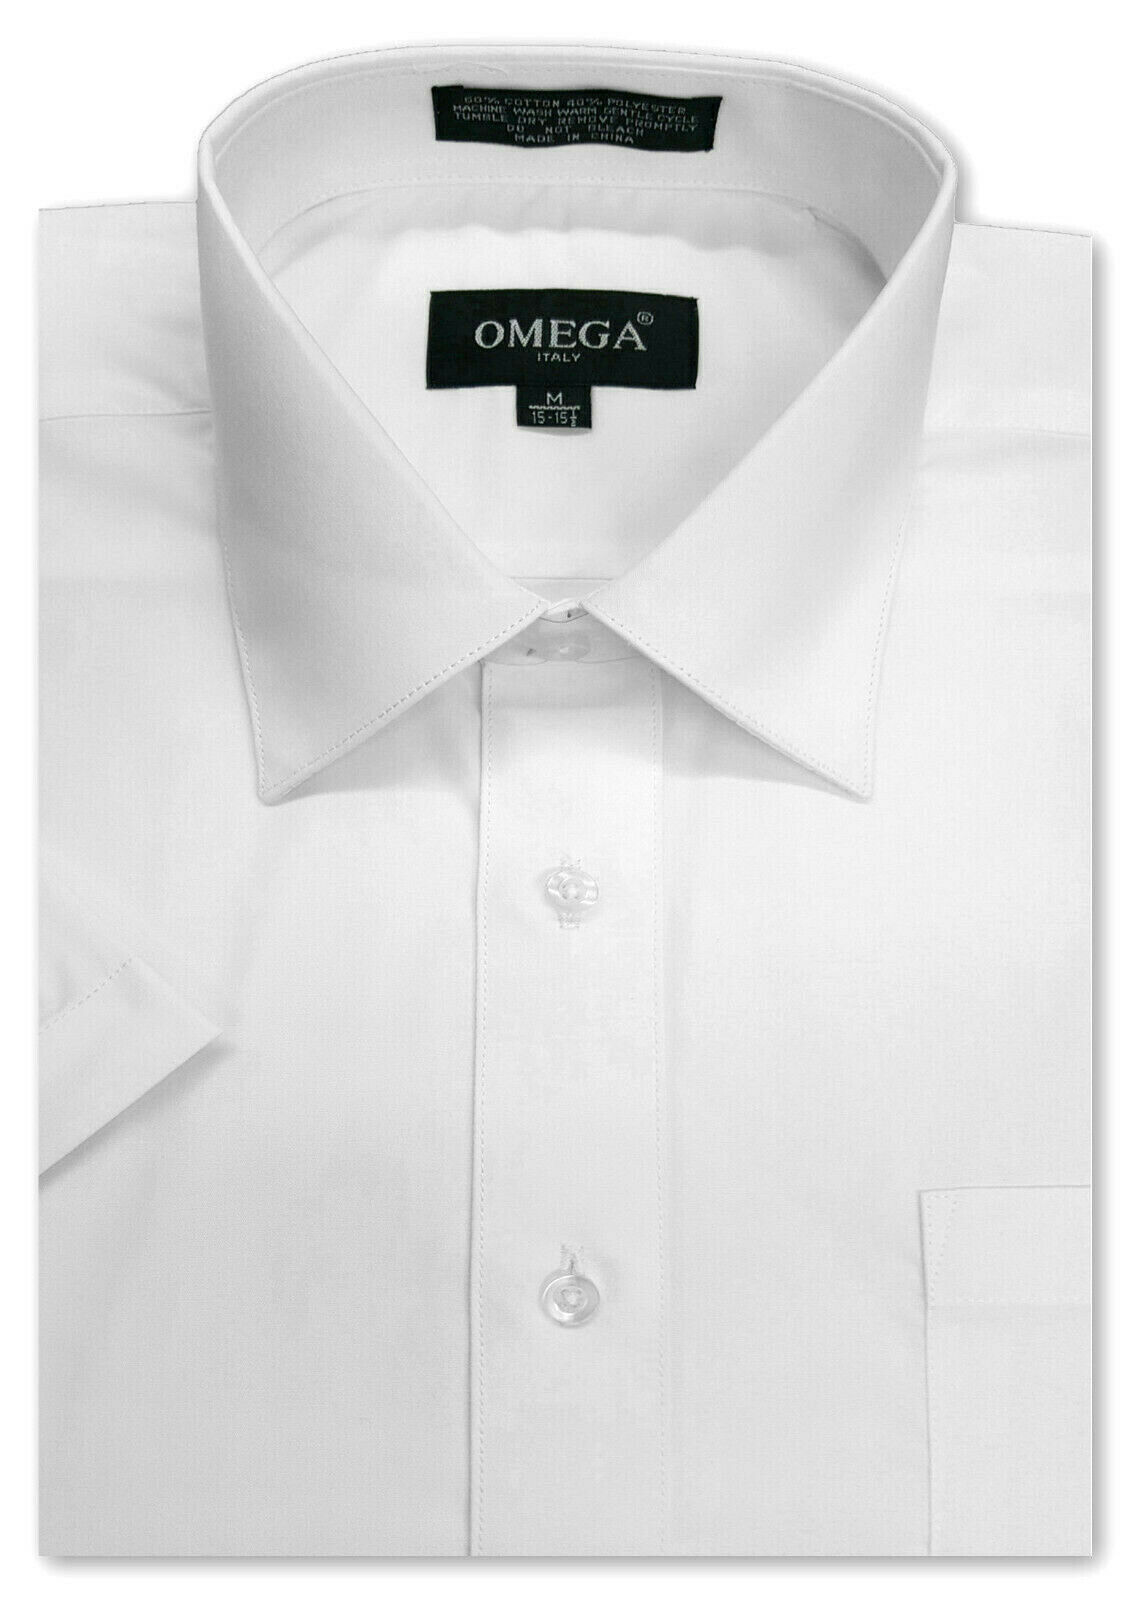 Mens White SHORT Sleeve Dress Shirt, ALL Sizes